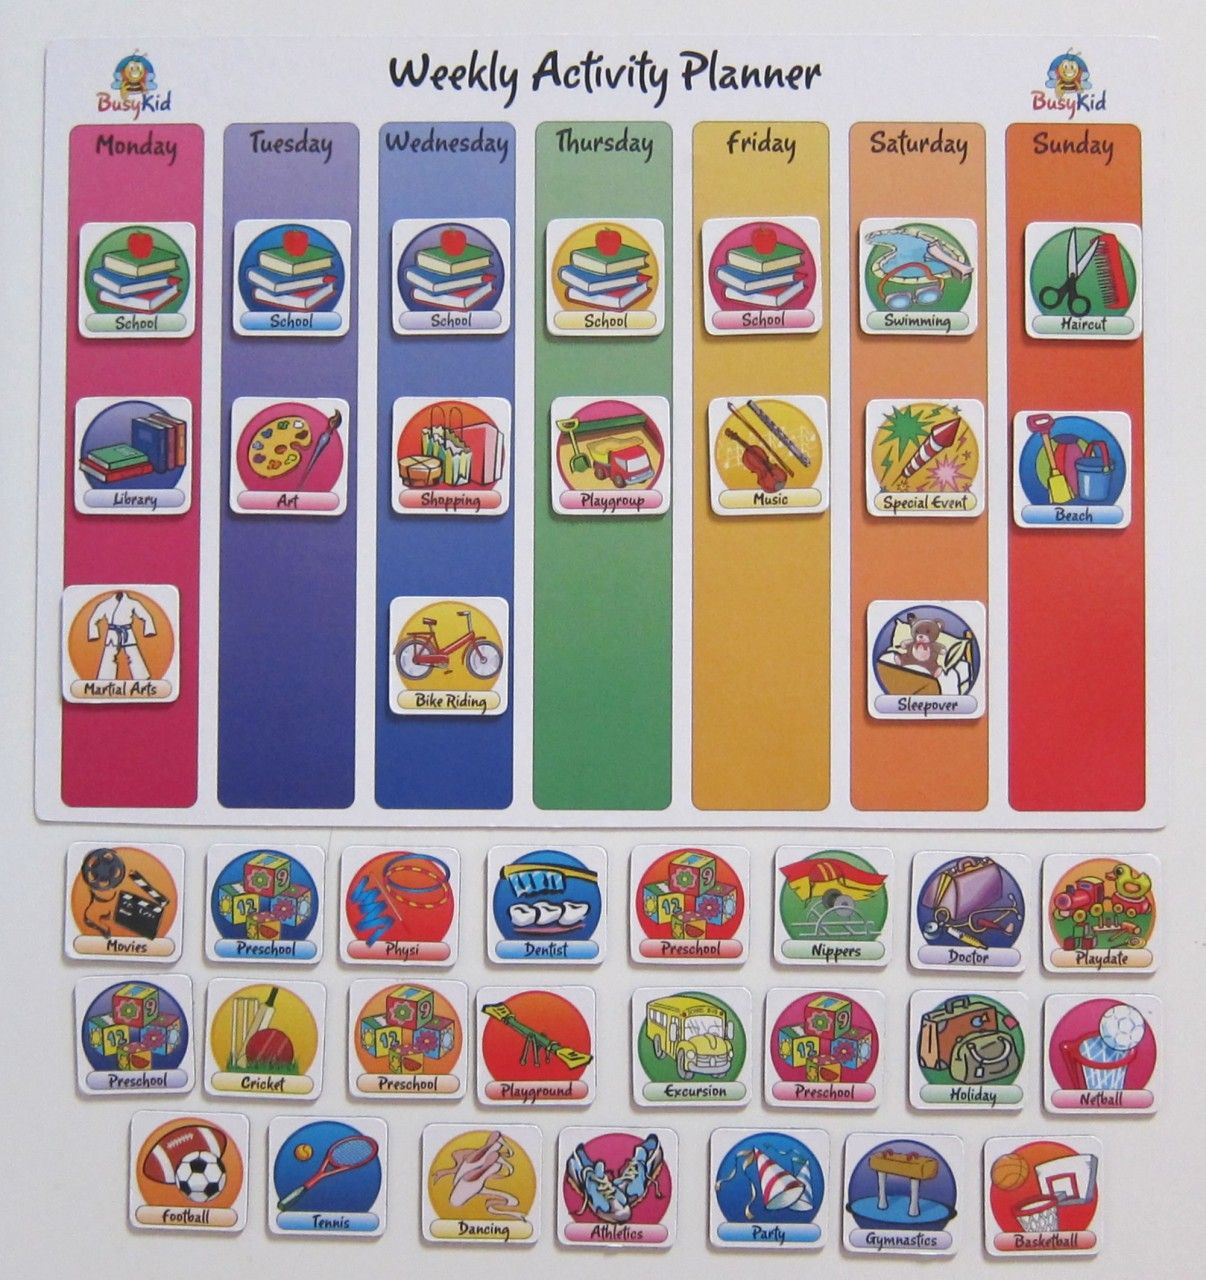 Weekly Calendar Magnet : Weekly activity planner for kids life planning